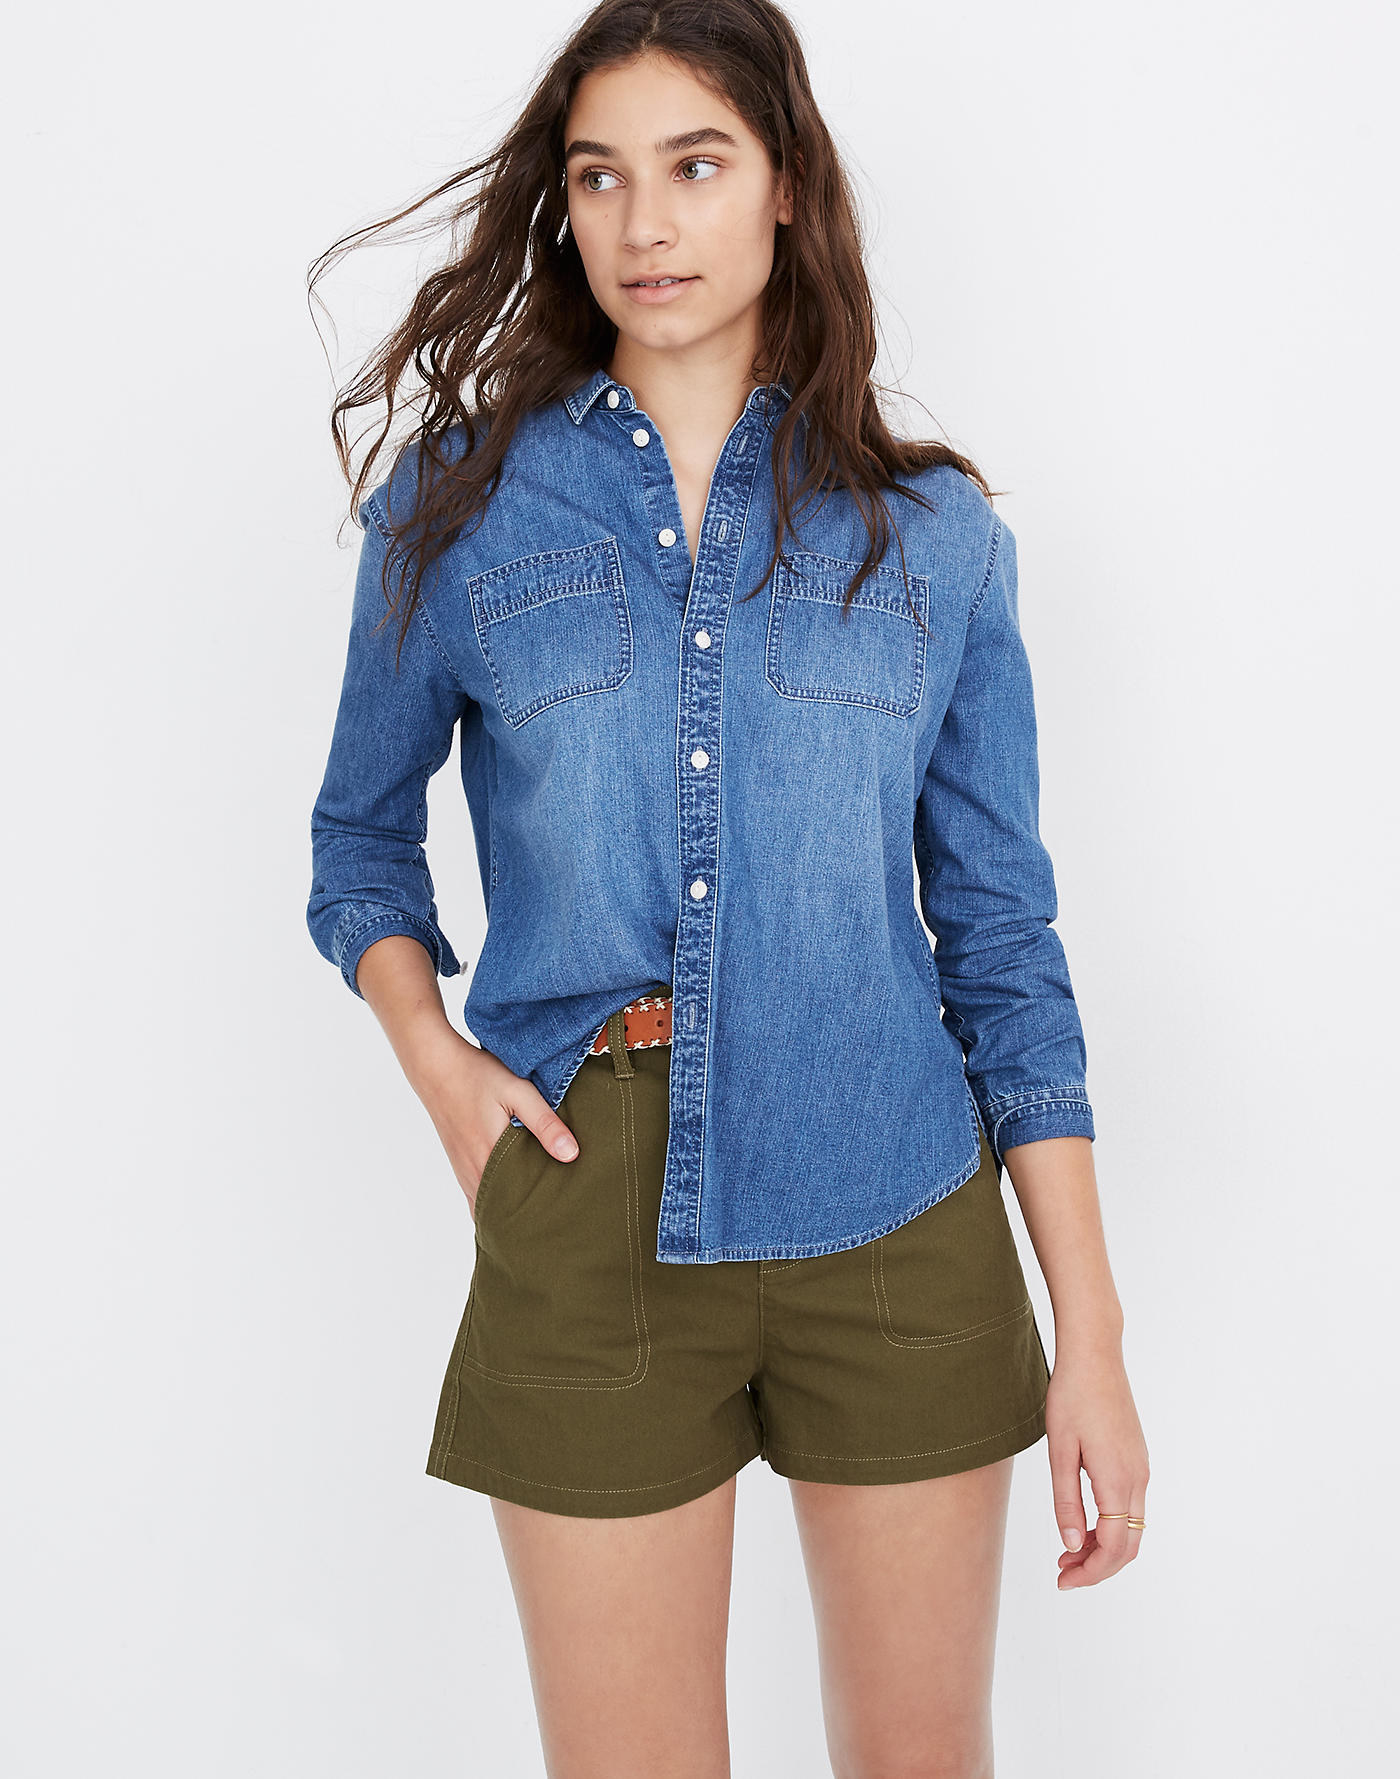 Model wearing button-down blue chambray shirt